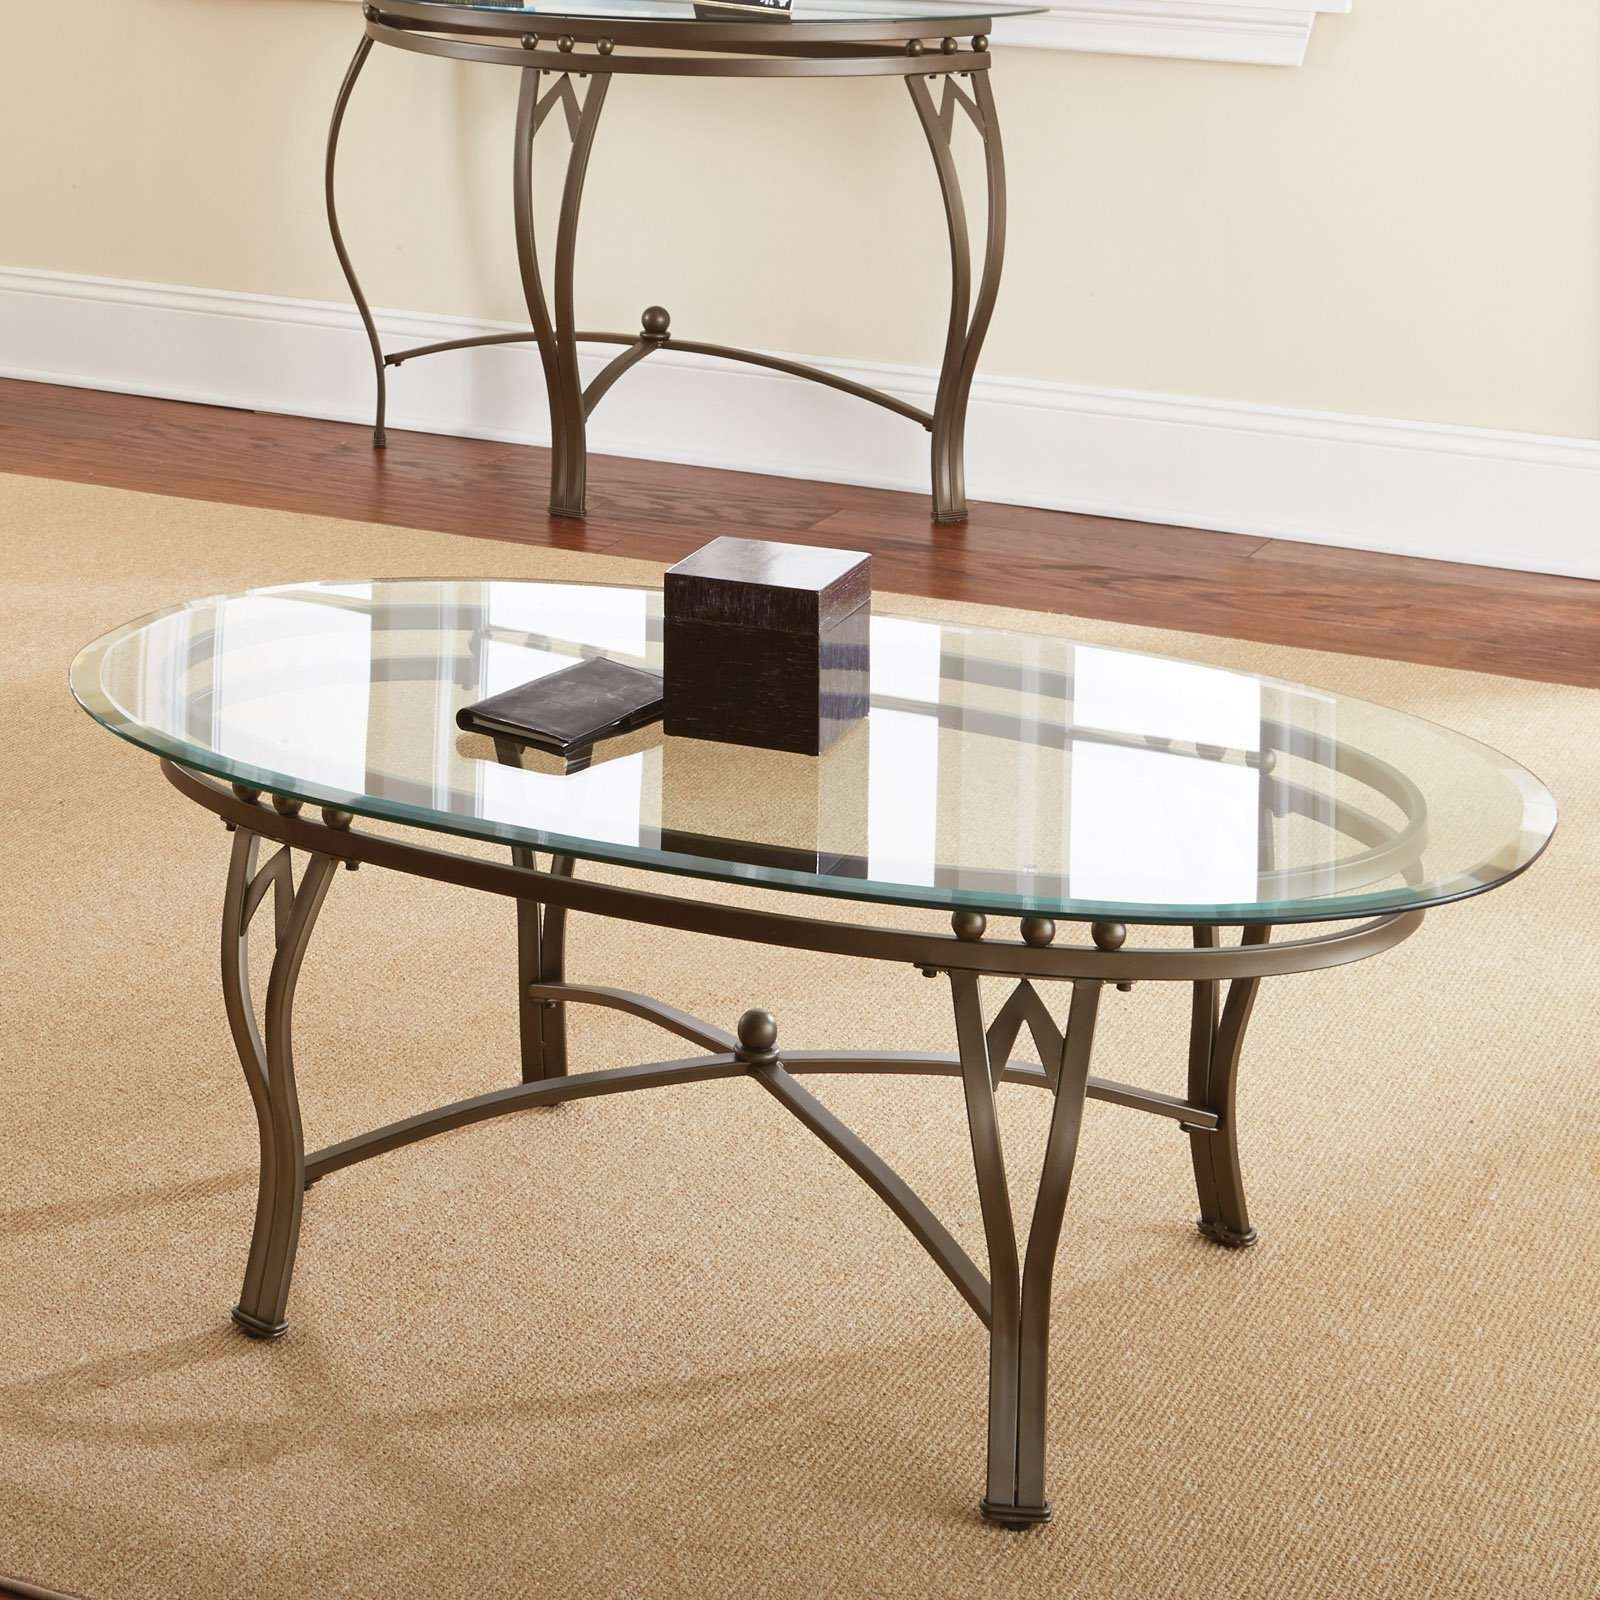 Steve Silver Madrid Oval Glass Top Coffee Table – Walmart Pertaining To Current Oval Glass And Wood Coffee Tables (View 20 of 20)